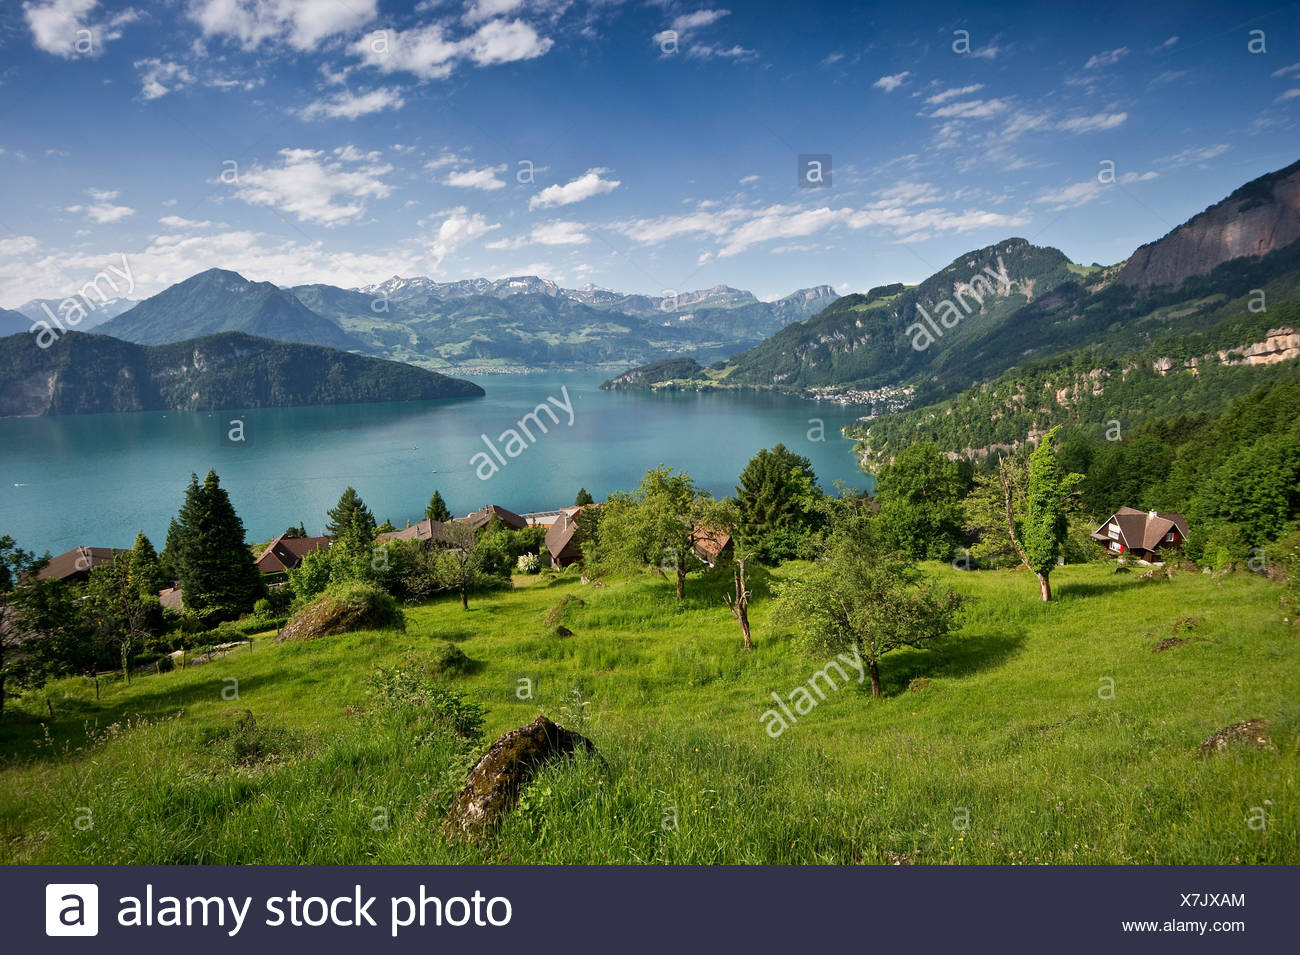 View from Telli towards the south, Weggis, Lake Lucerne, Canton of Lucerne, Switzerland, Europe - Stock Image